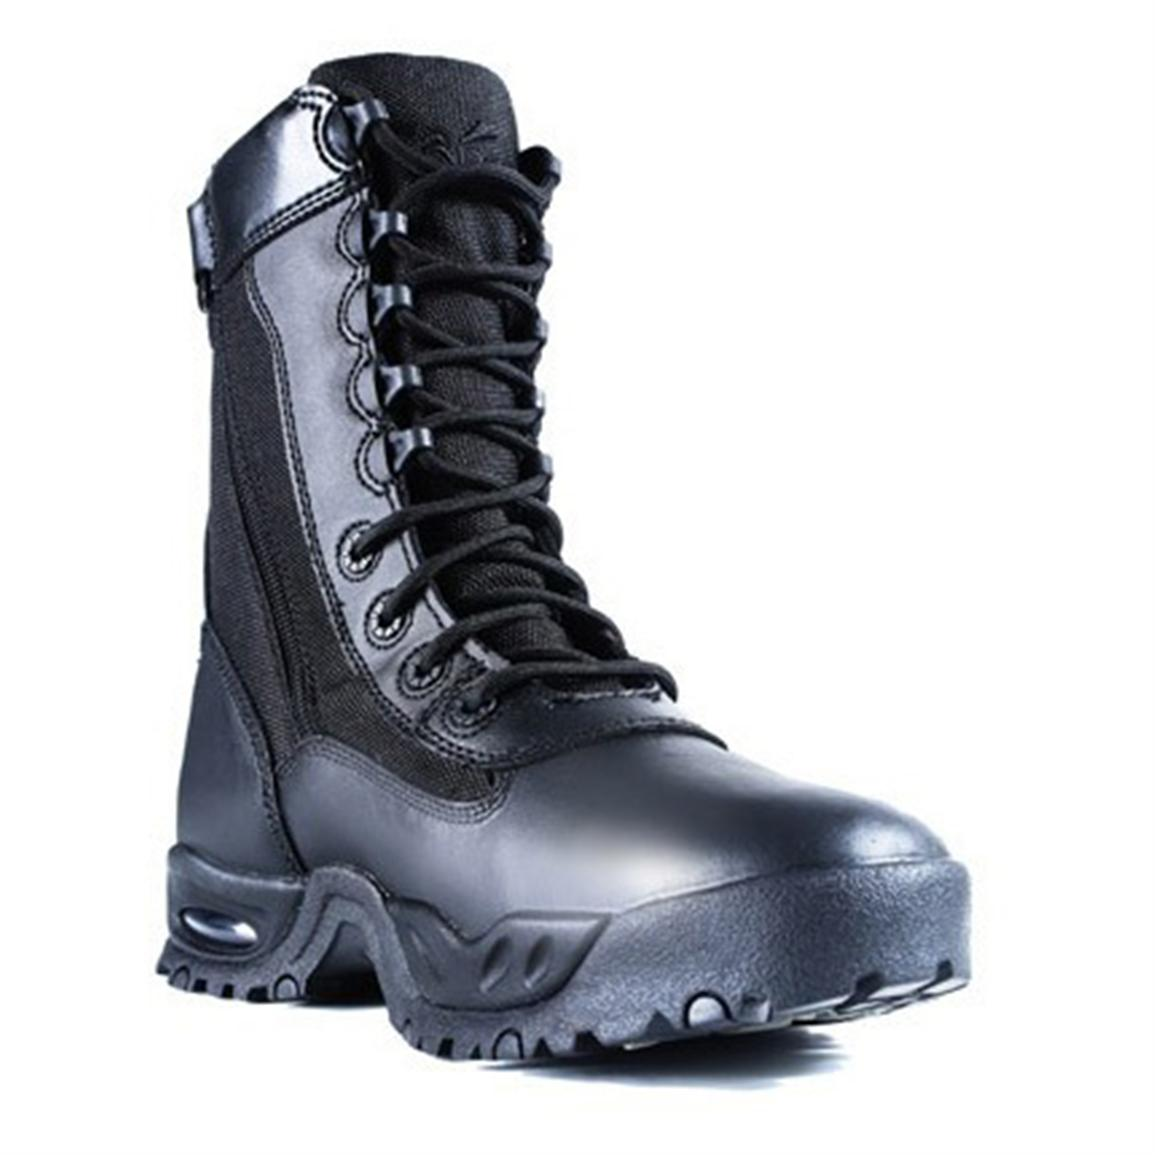 Men's Ridge AIR-TAC Zipper Combat Boots, Black